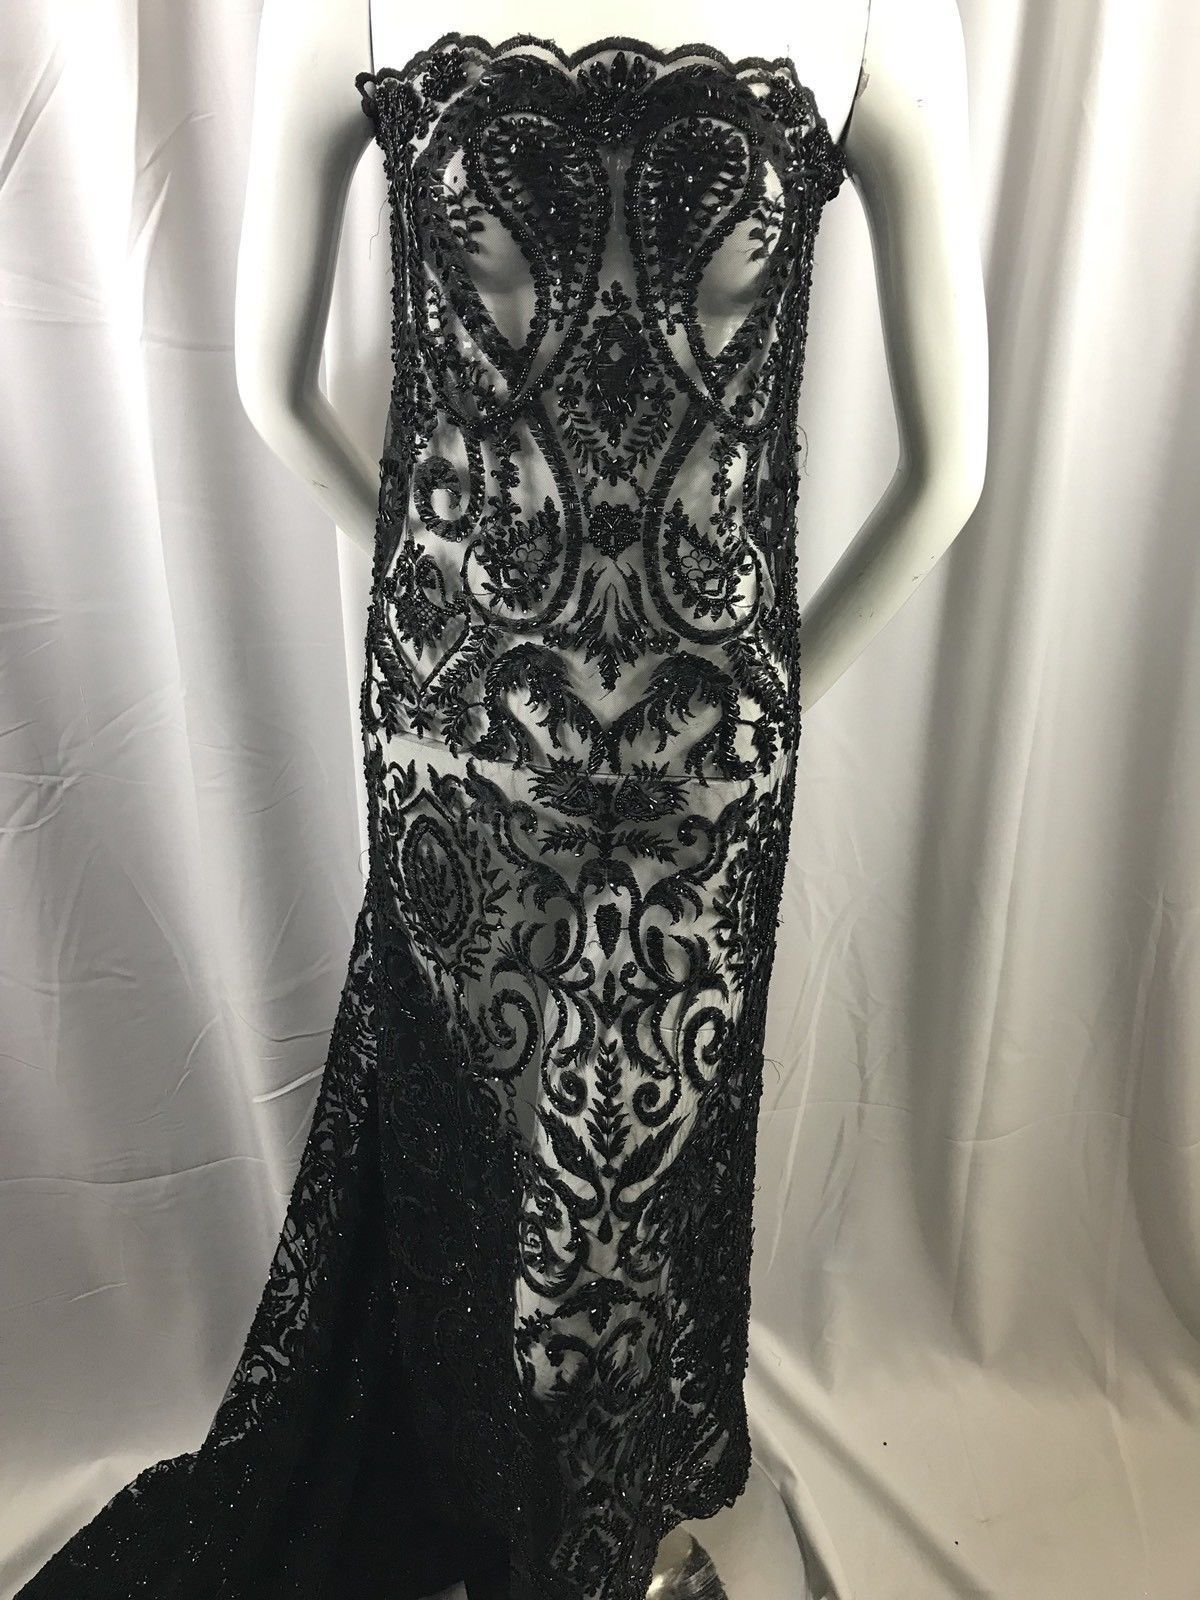 Lace fabric by the yard black mesh dress hand embroidered beaded